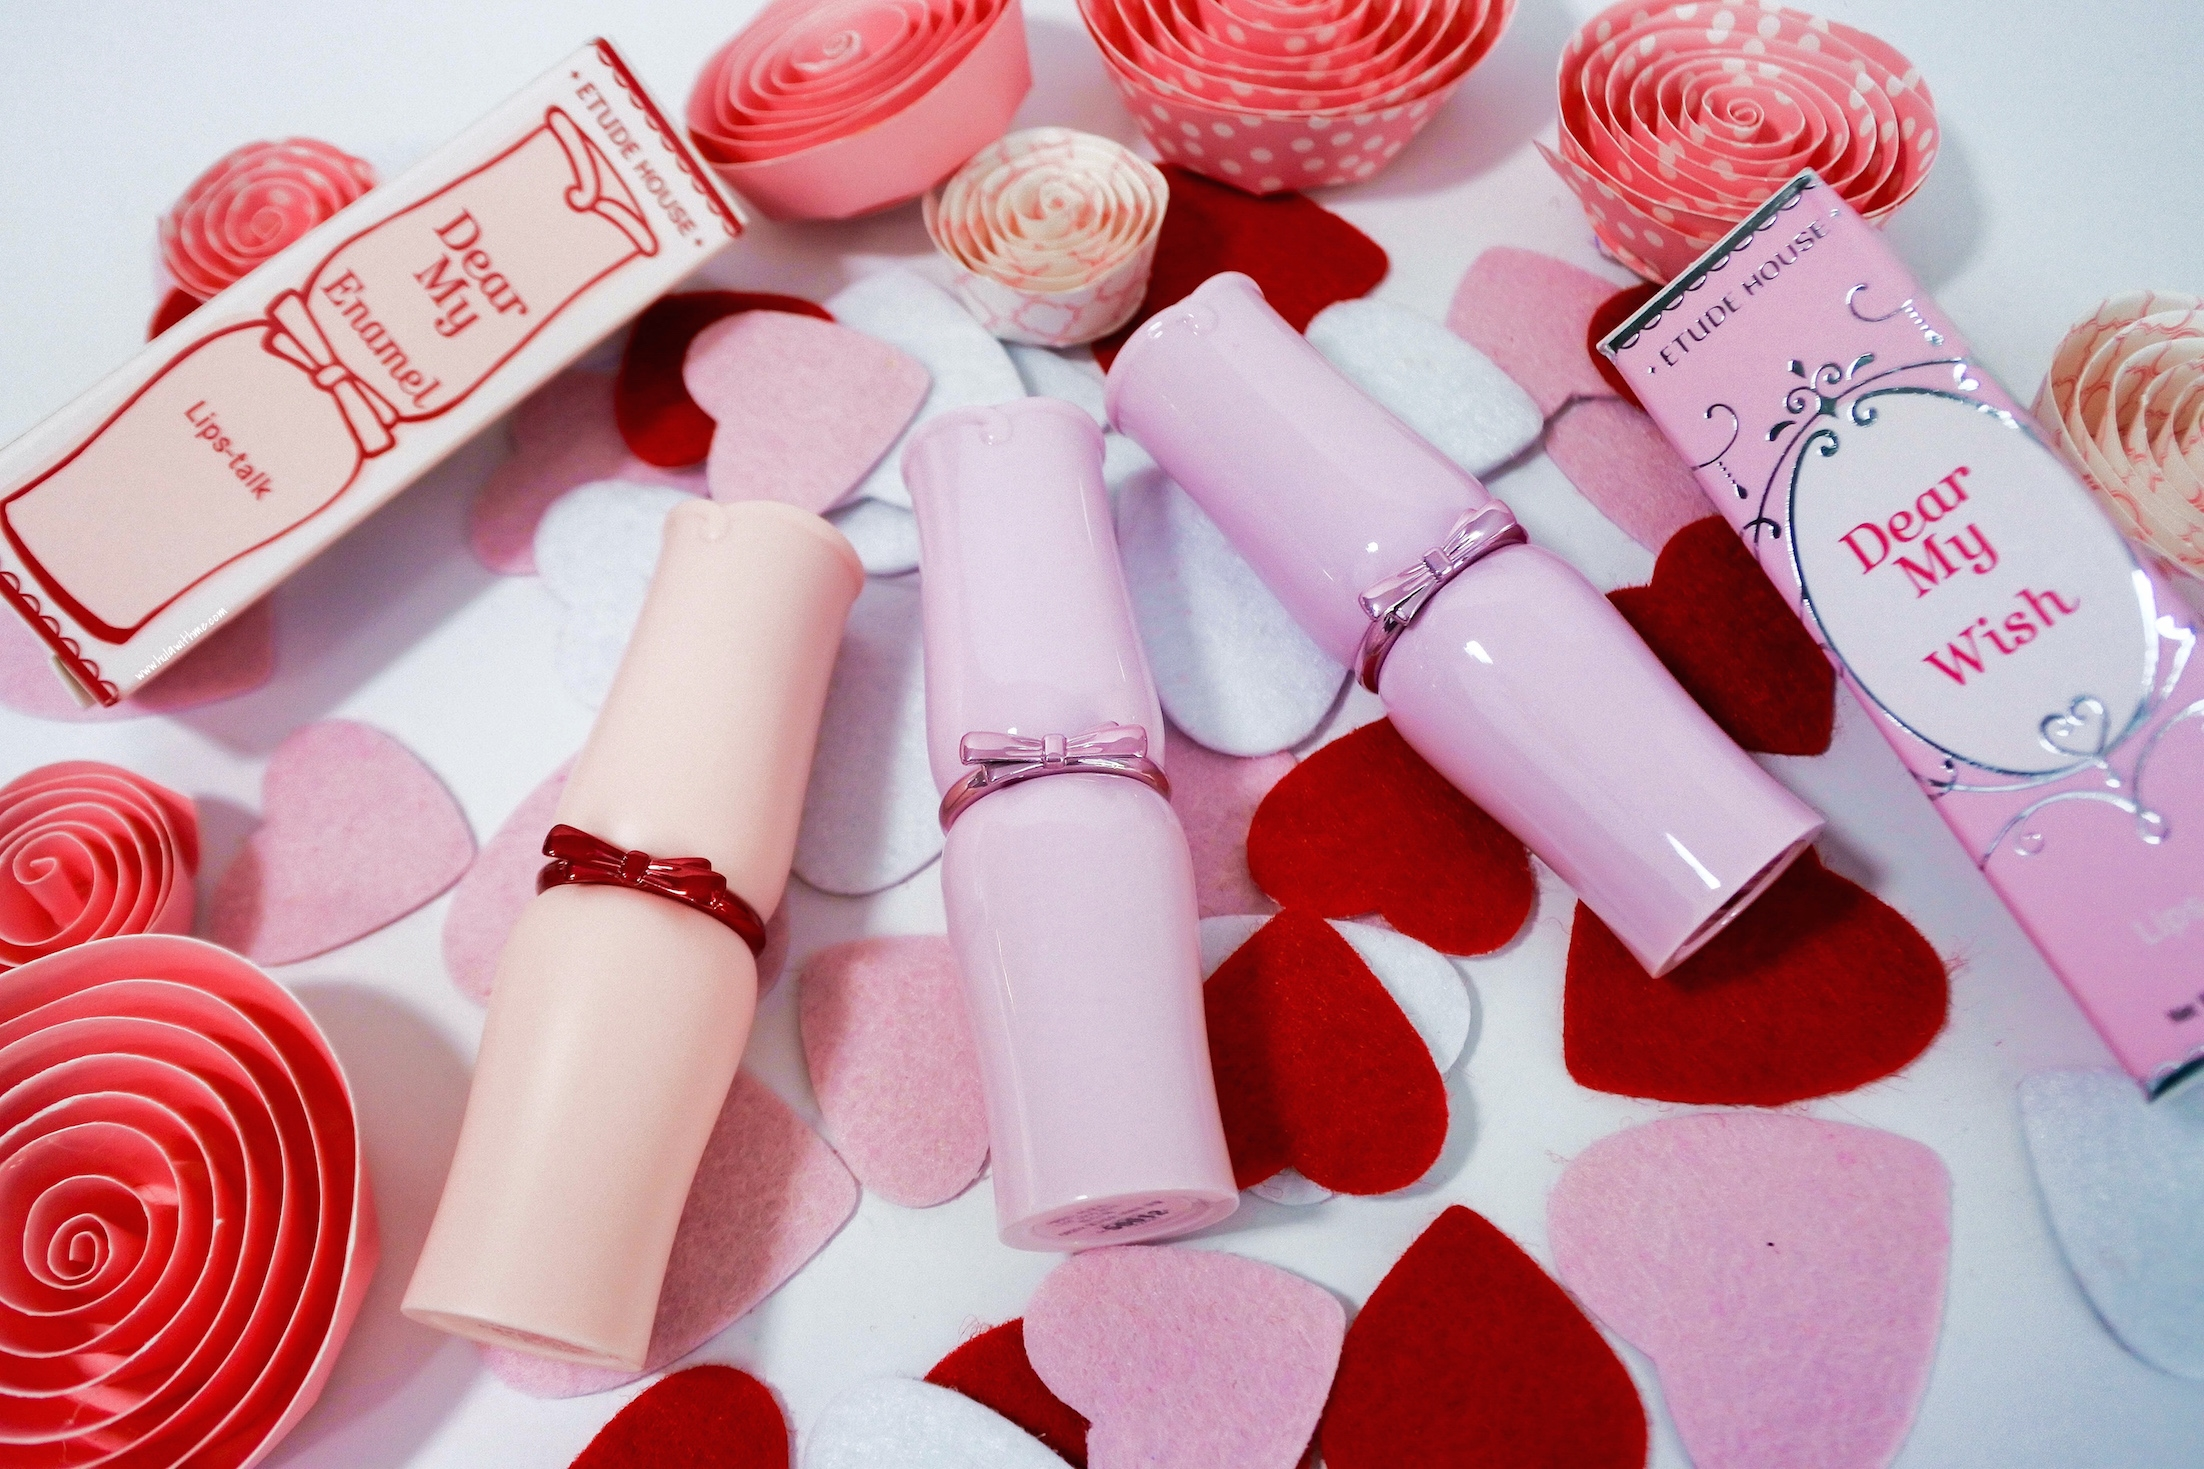 Etude House Dear My Enamel and Dear My Wish Lipsticks.